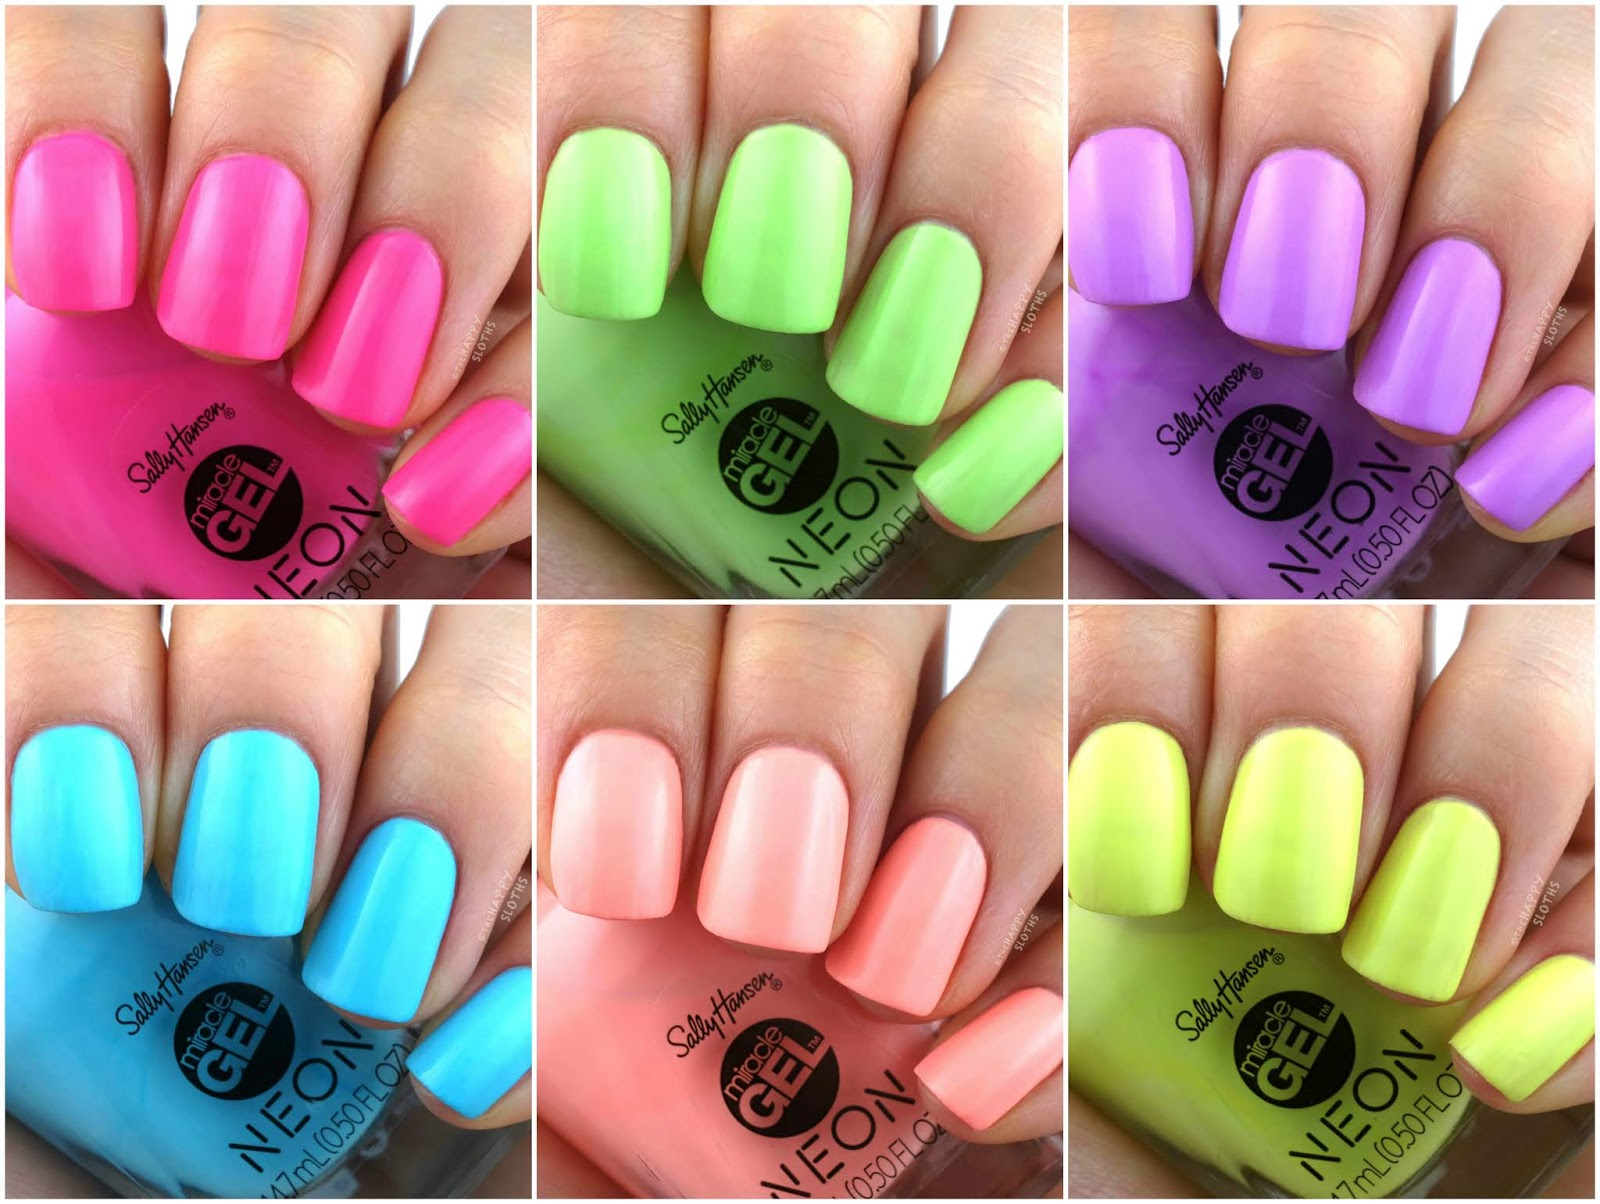 Sally Hansen | Miracle Gel Summer 2019 Neon Collection: Review and Swatches